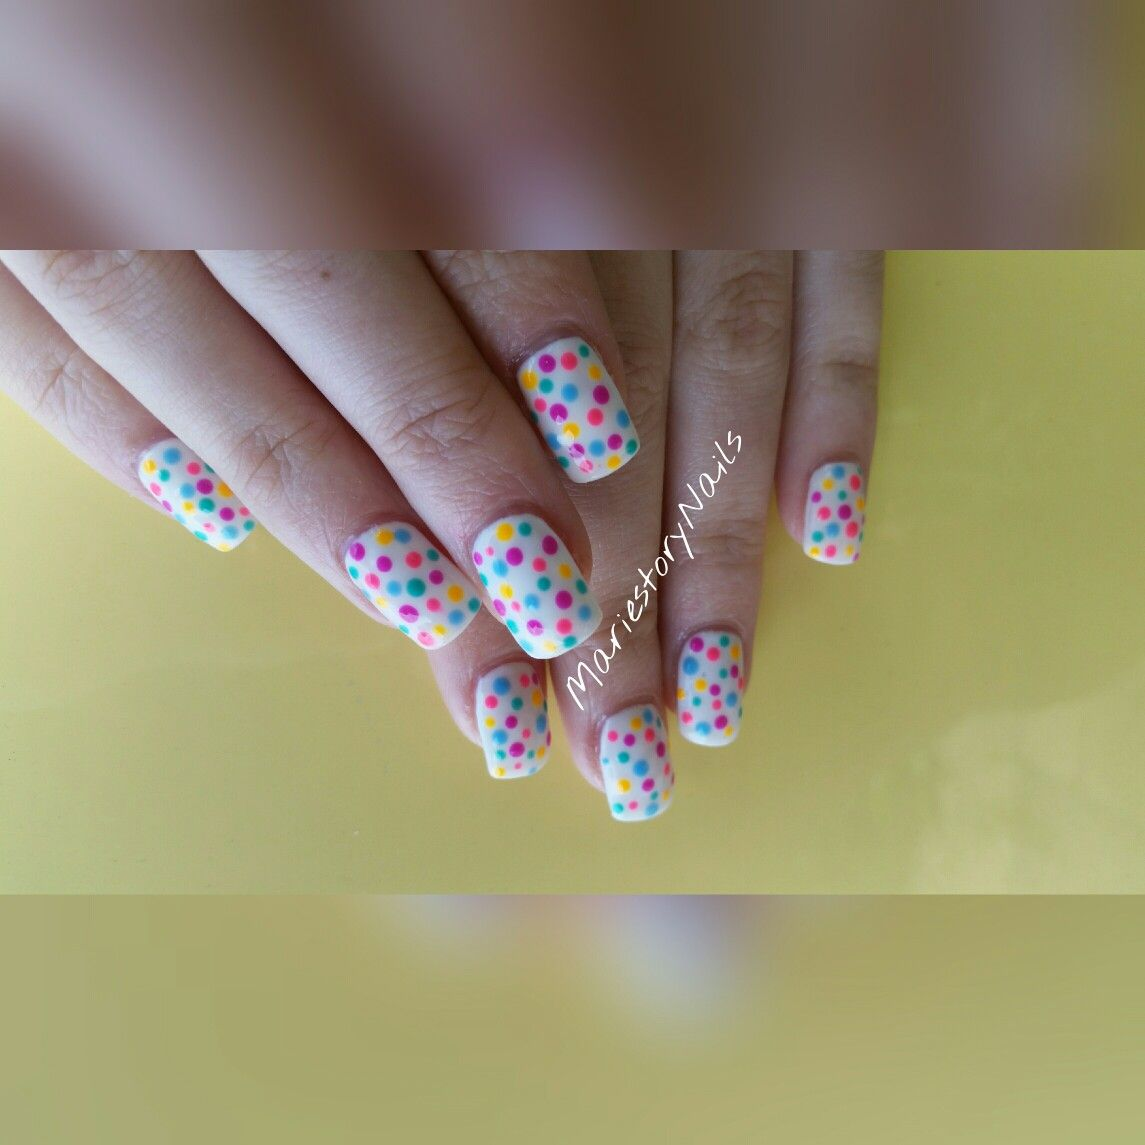 #summernails #dotnails